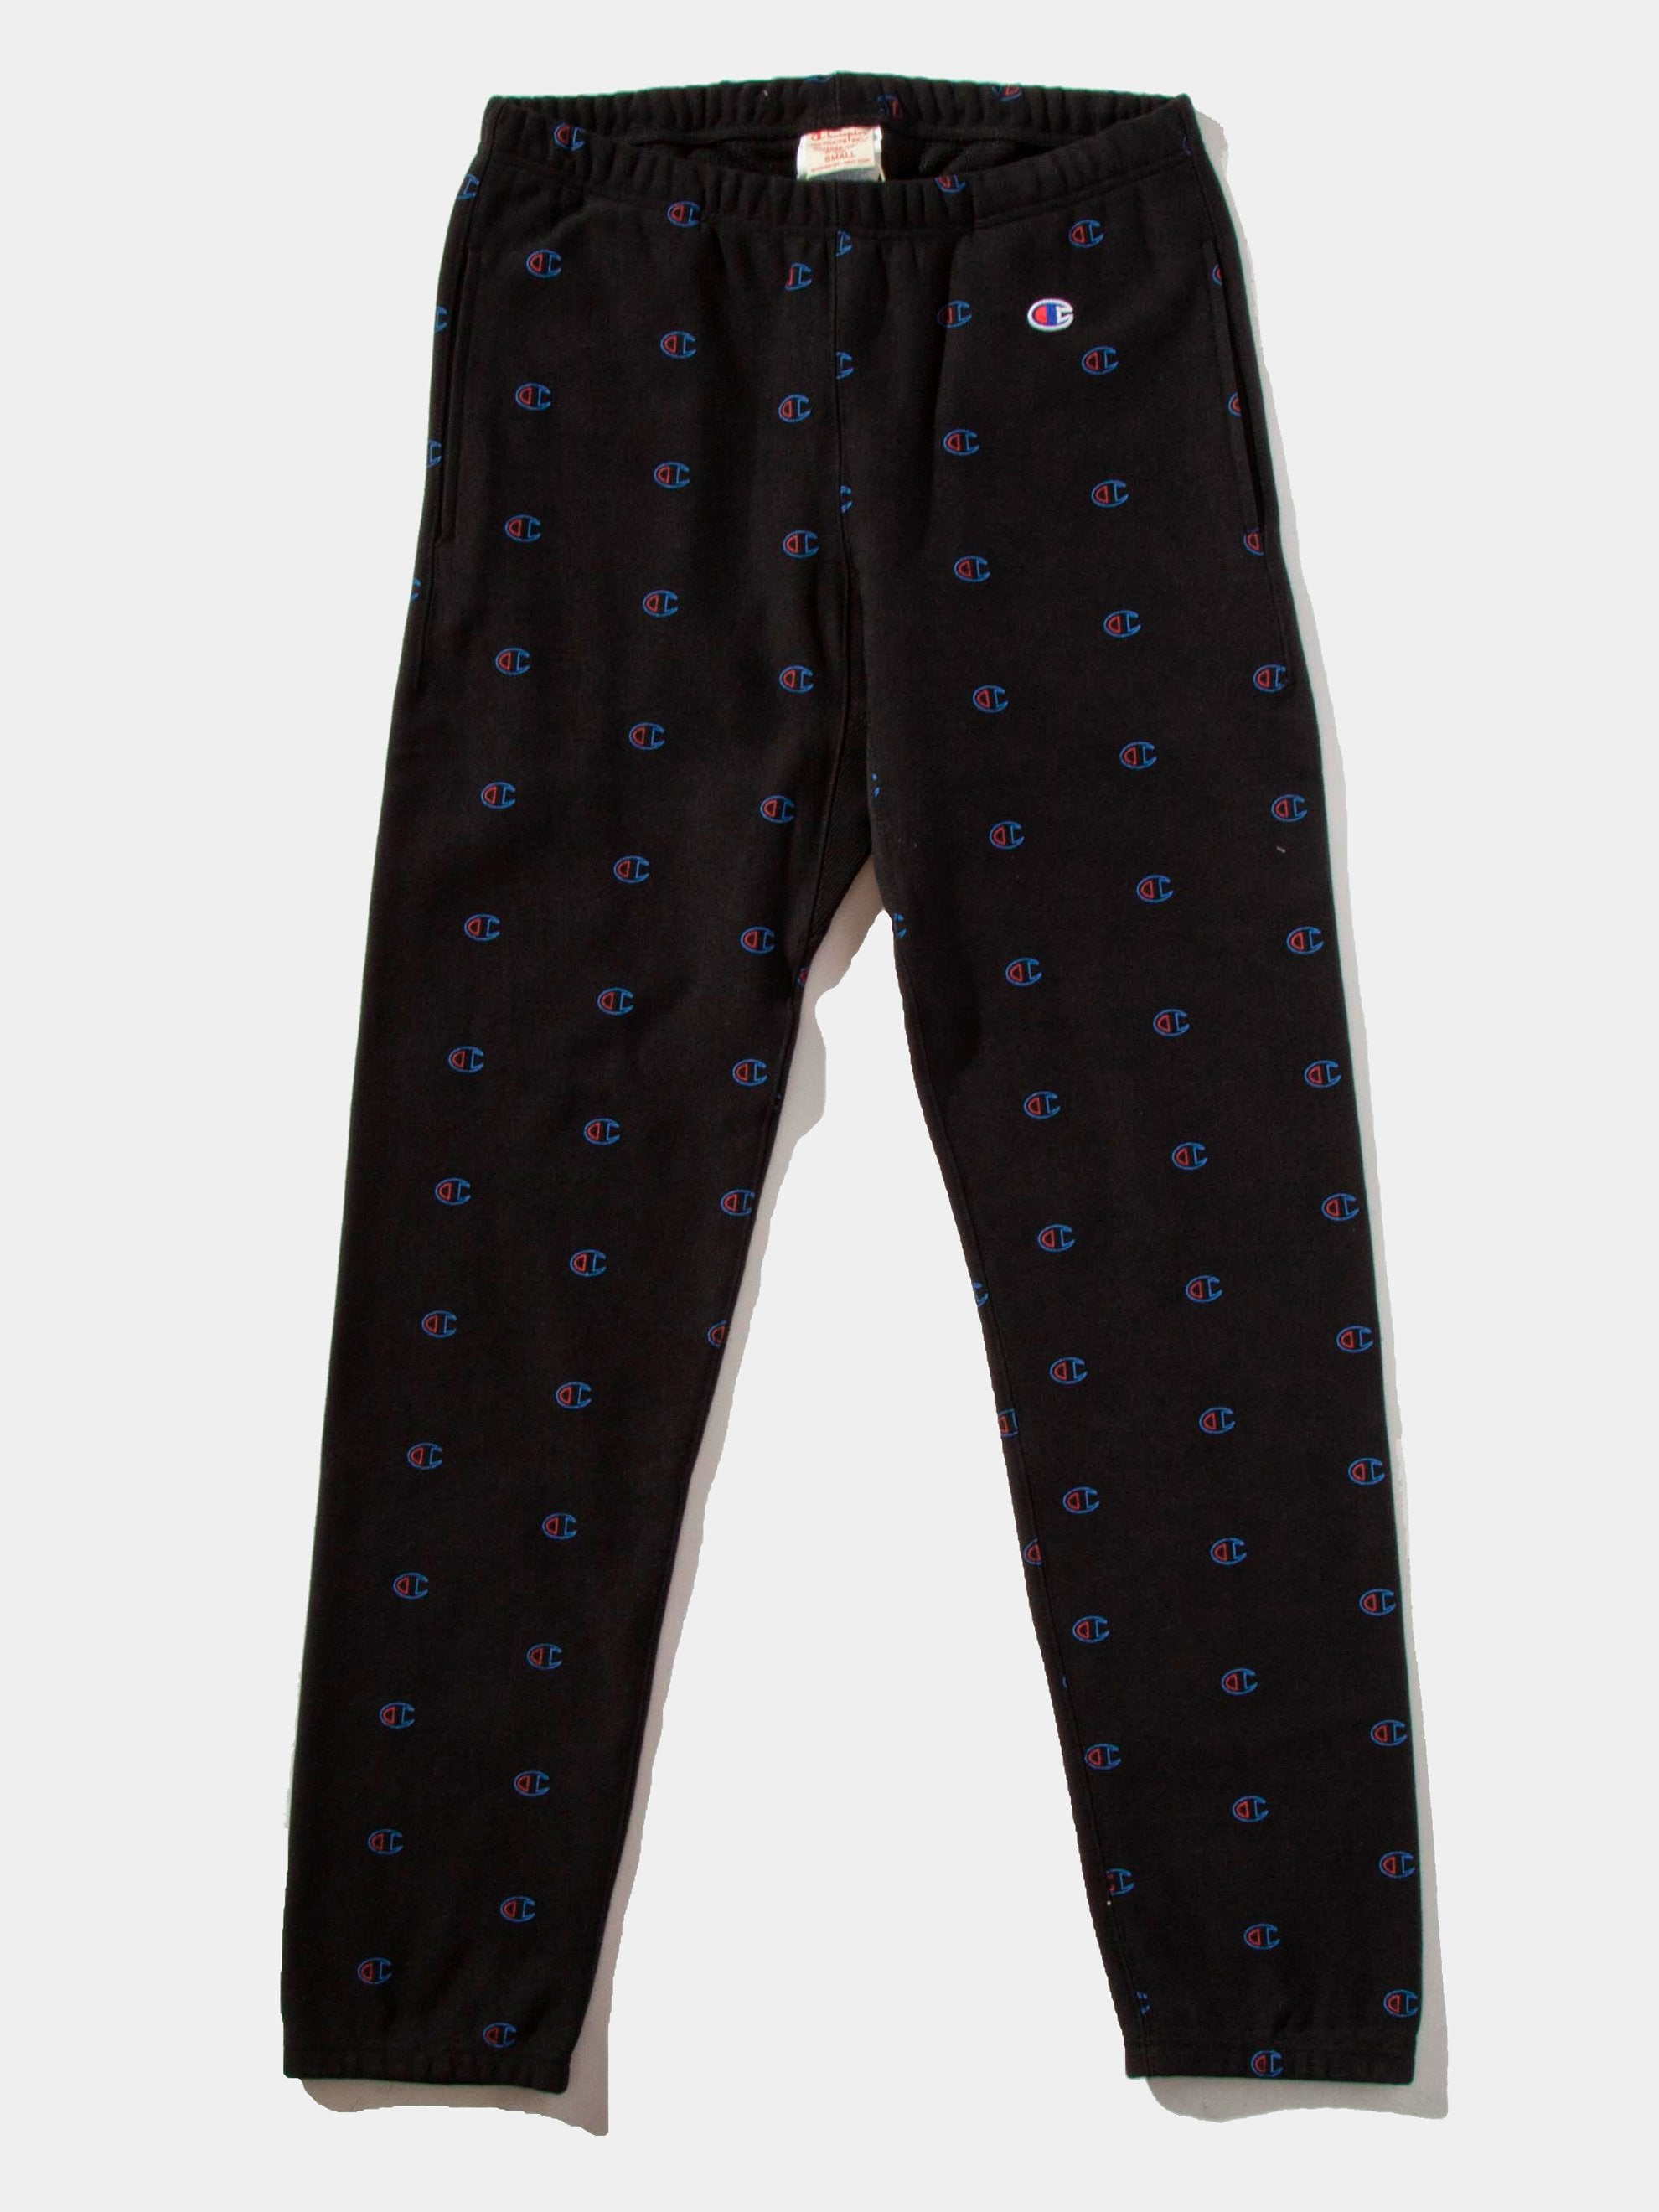 Black All Over Print Sweatpants 10